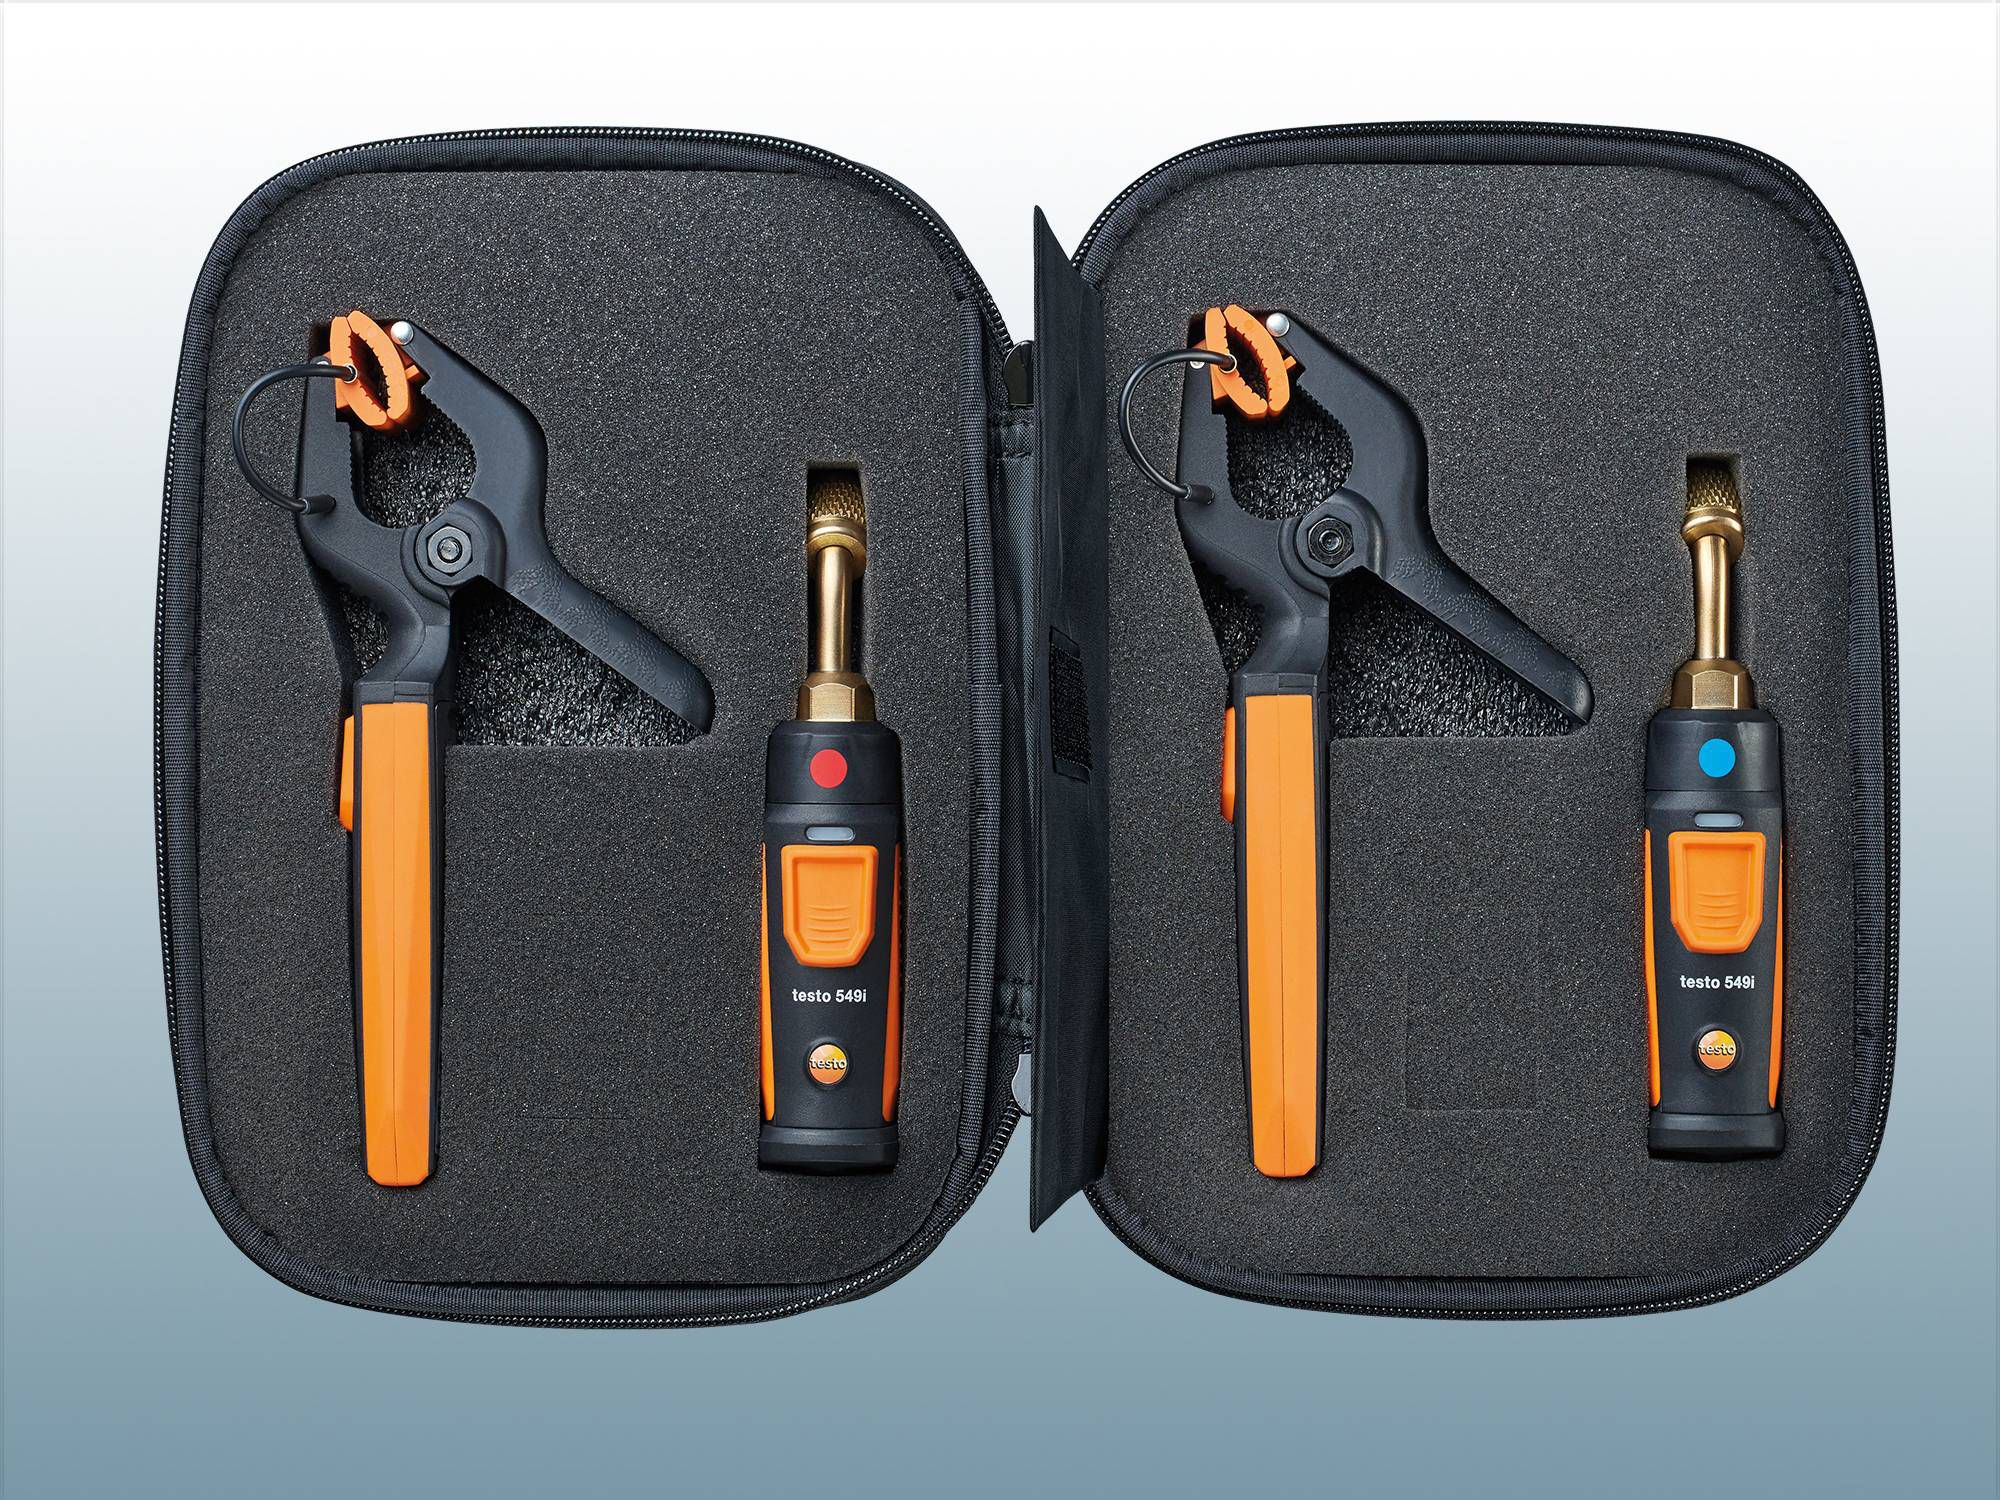 testo-Smart-Probes-2019-POP-AC-test-set.jpg